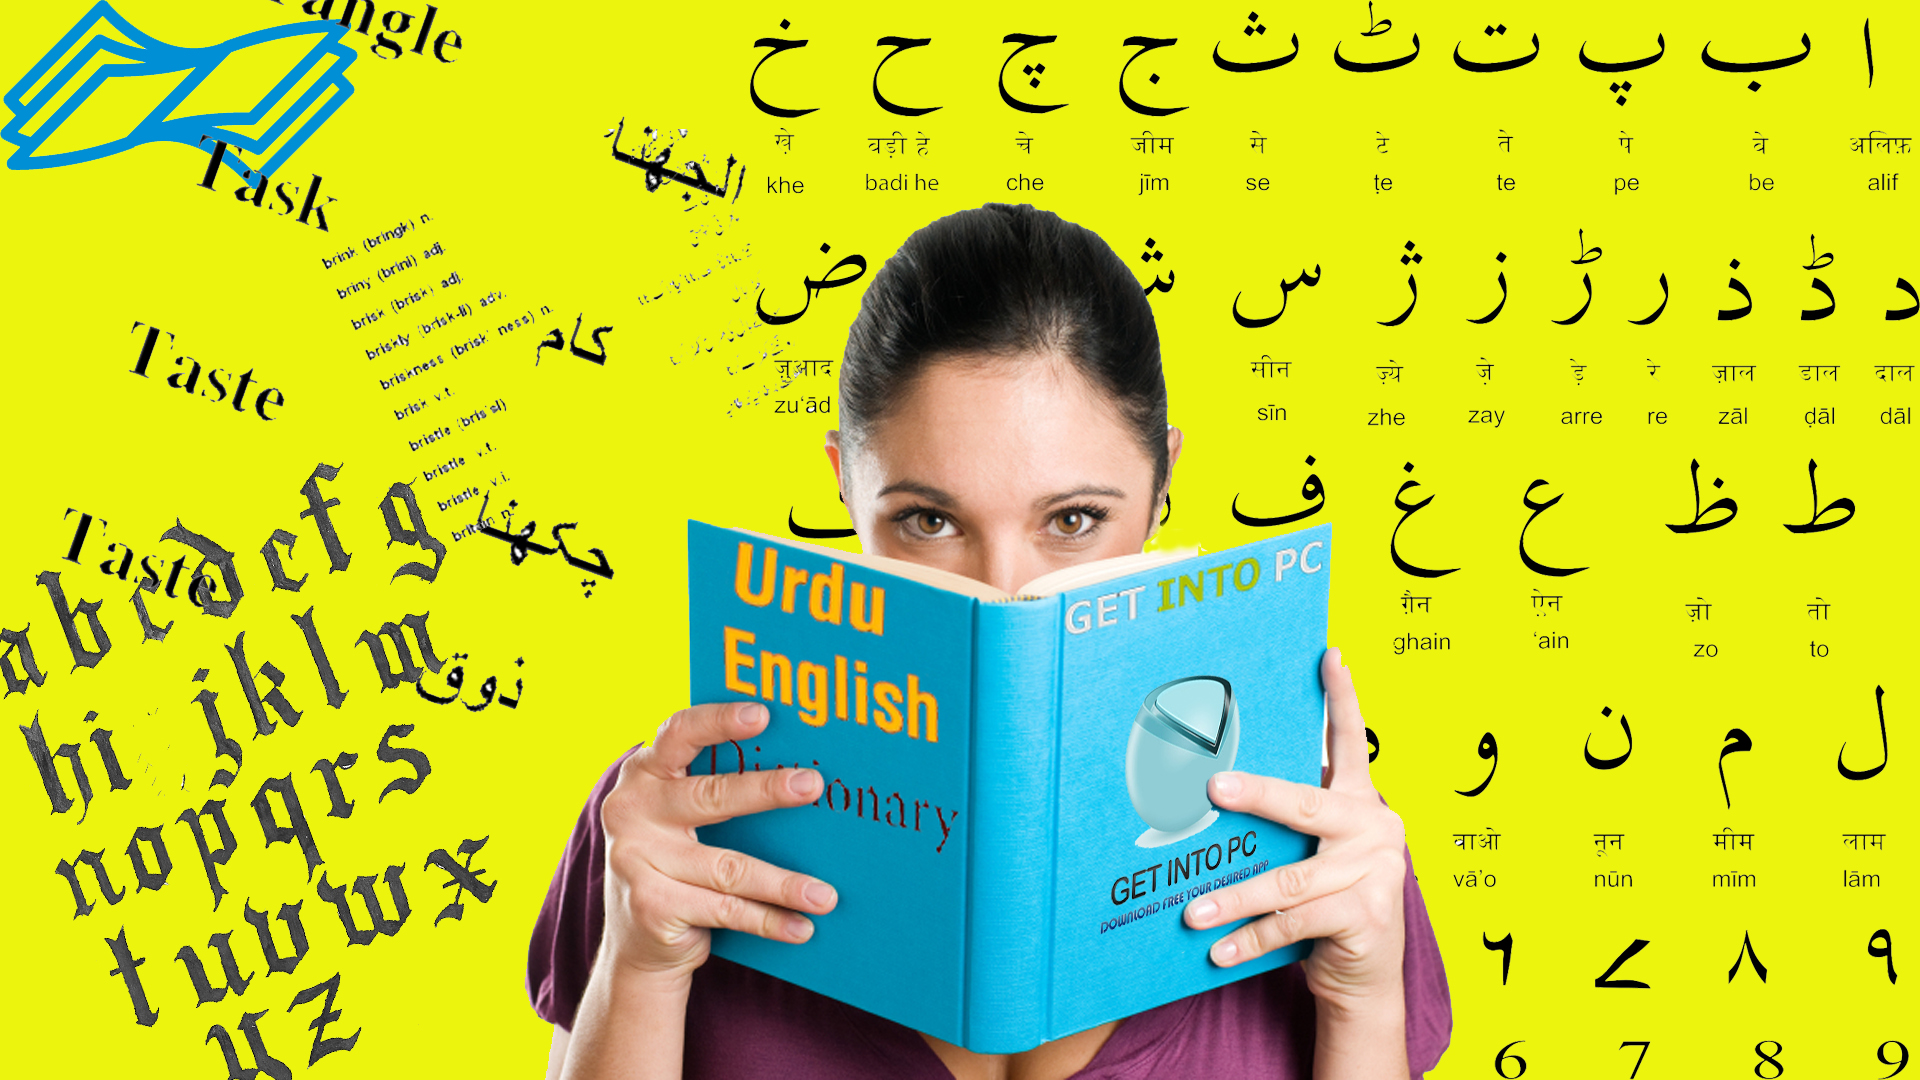 urdu to english speaking software free download